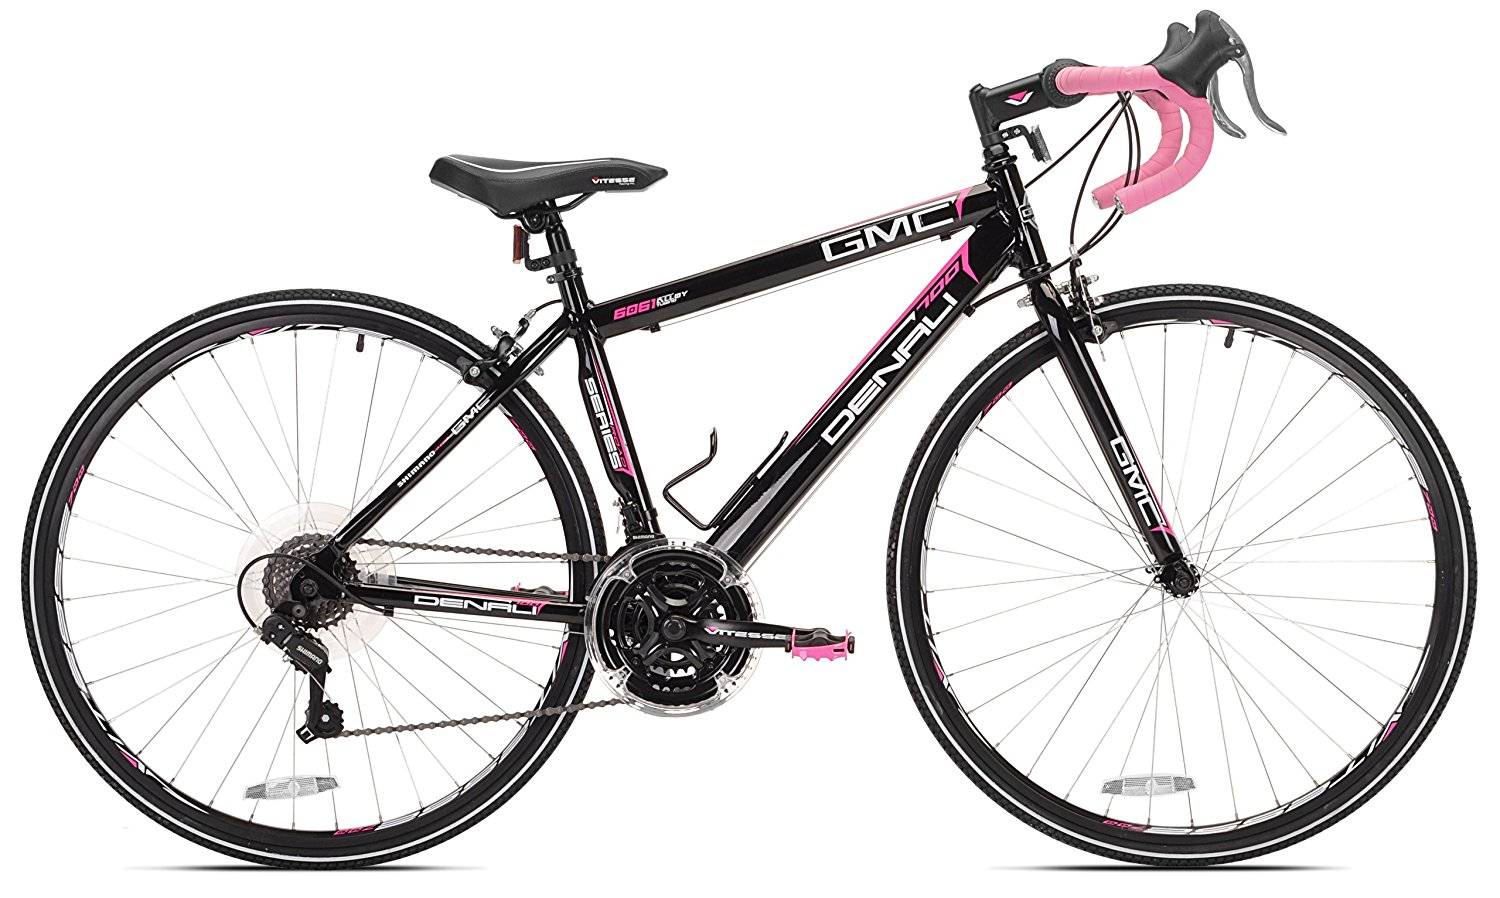 Gmc Denali Road Bike Vs Gmc Denali Pro Road Bike Which